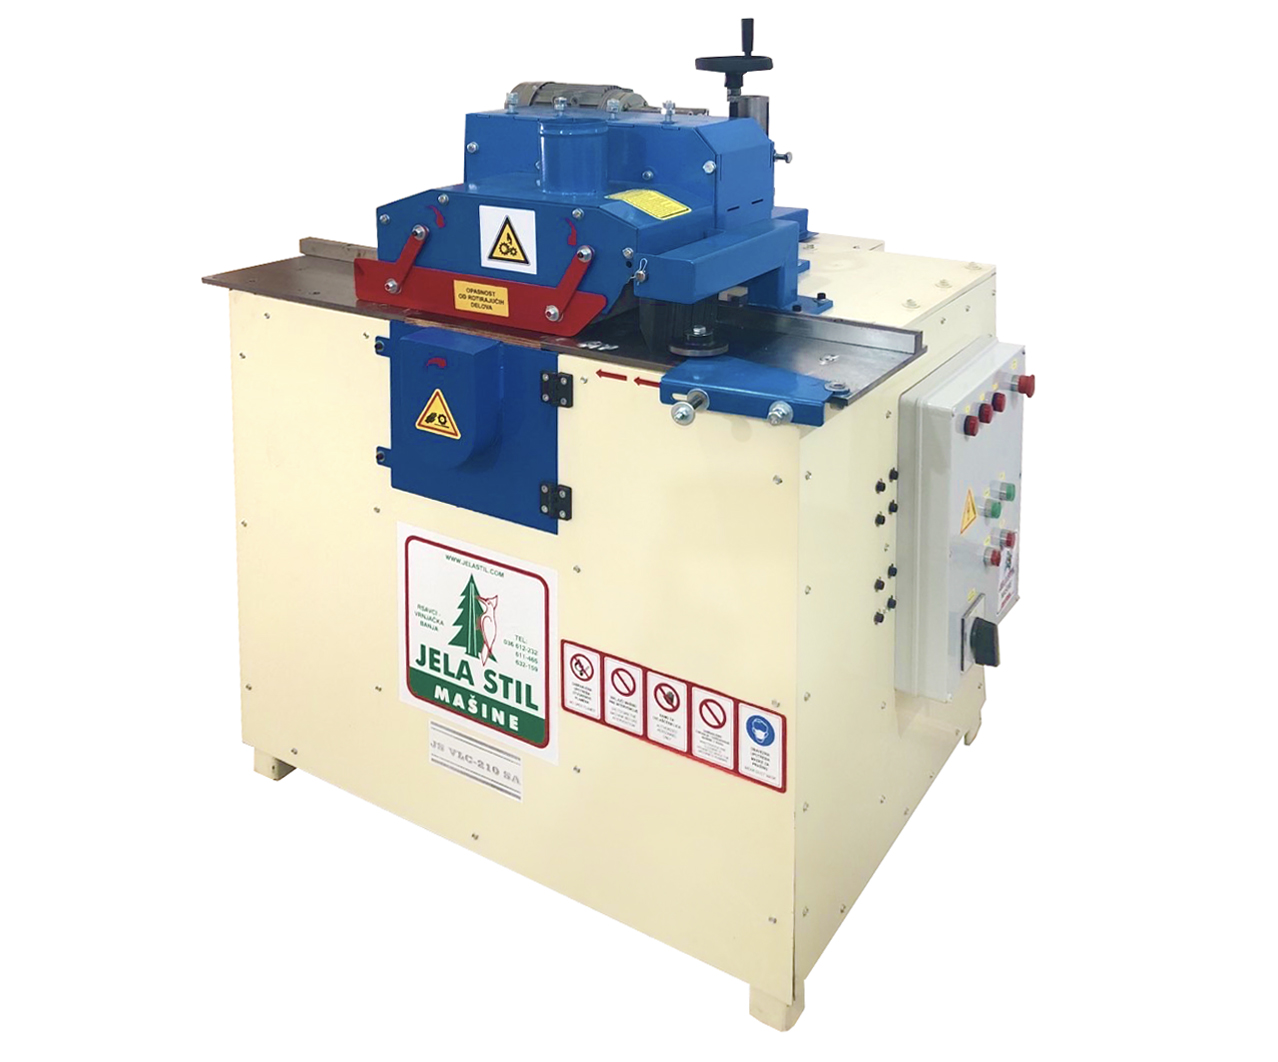 MULTISAW MACHINE – JS-VLC 480